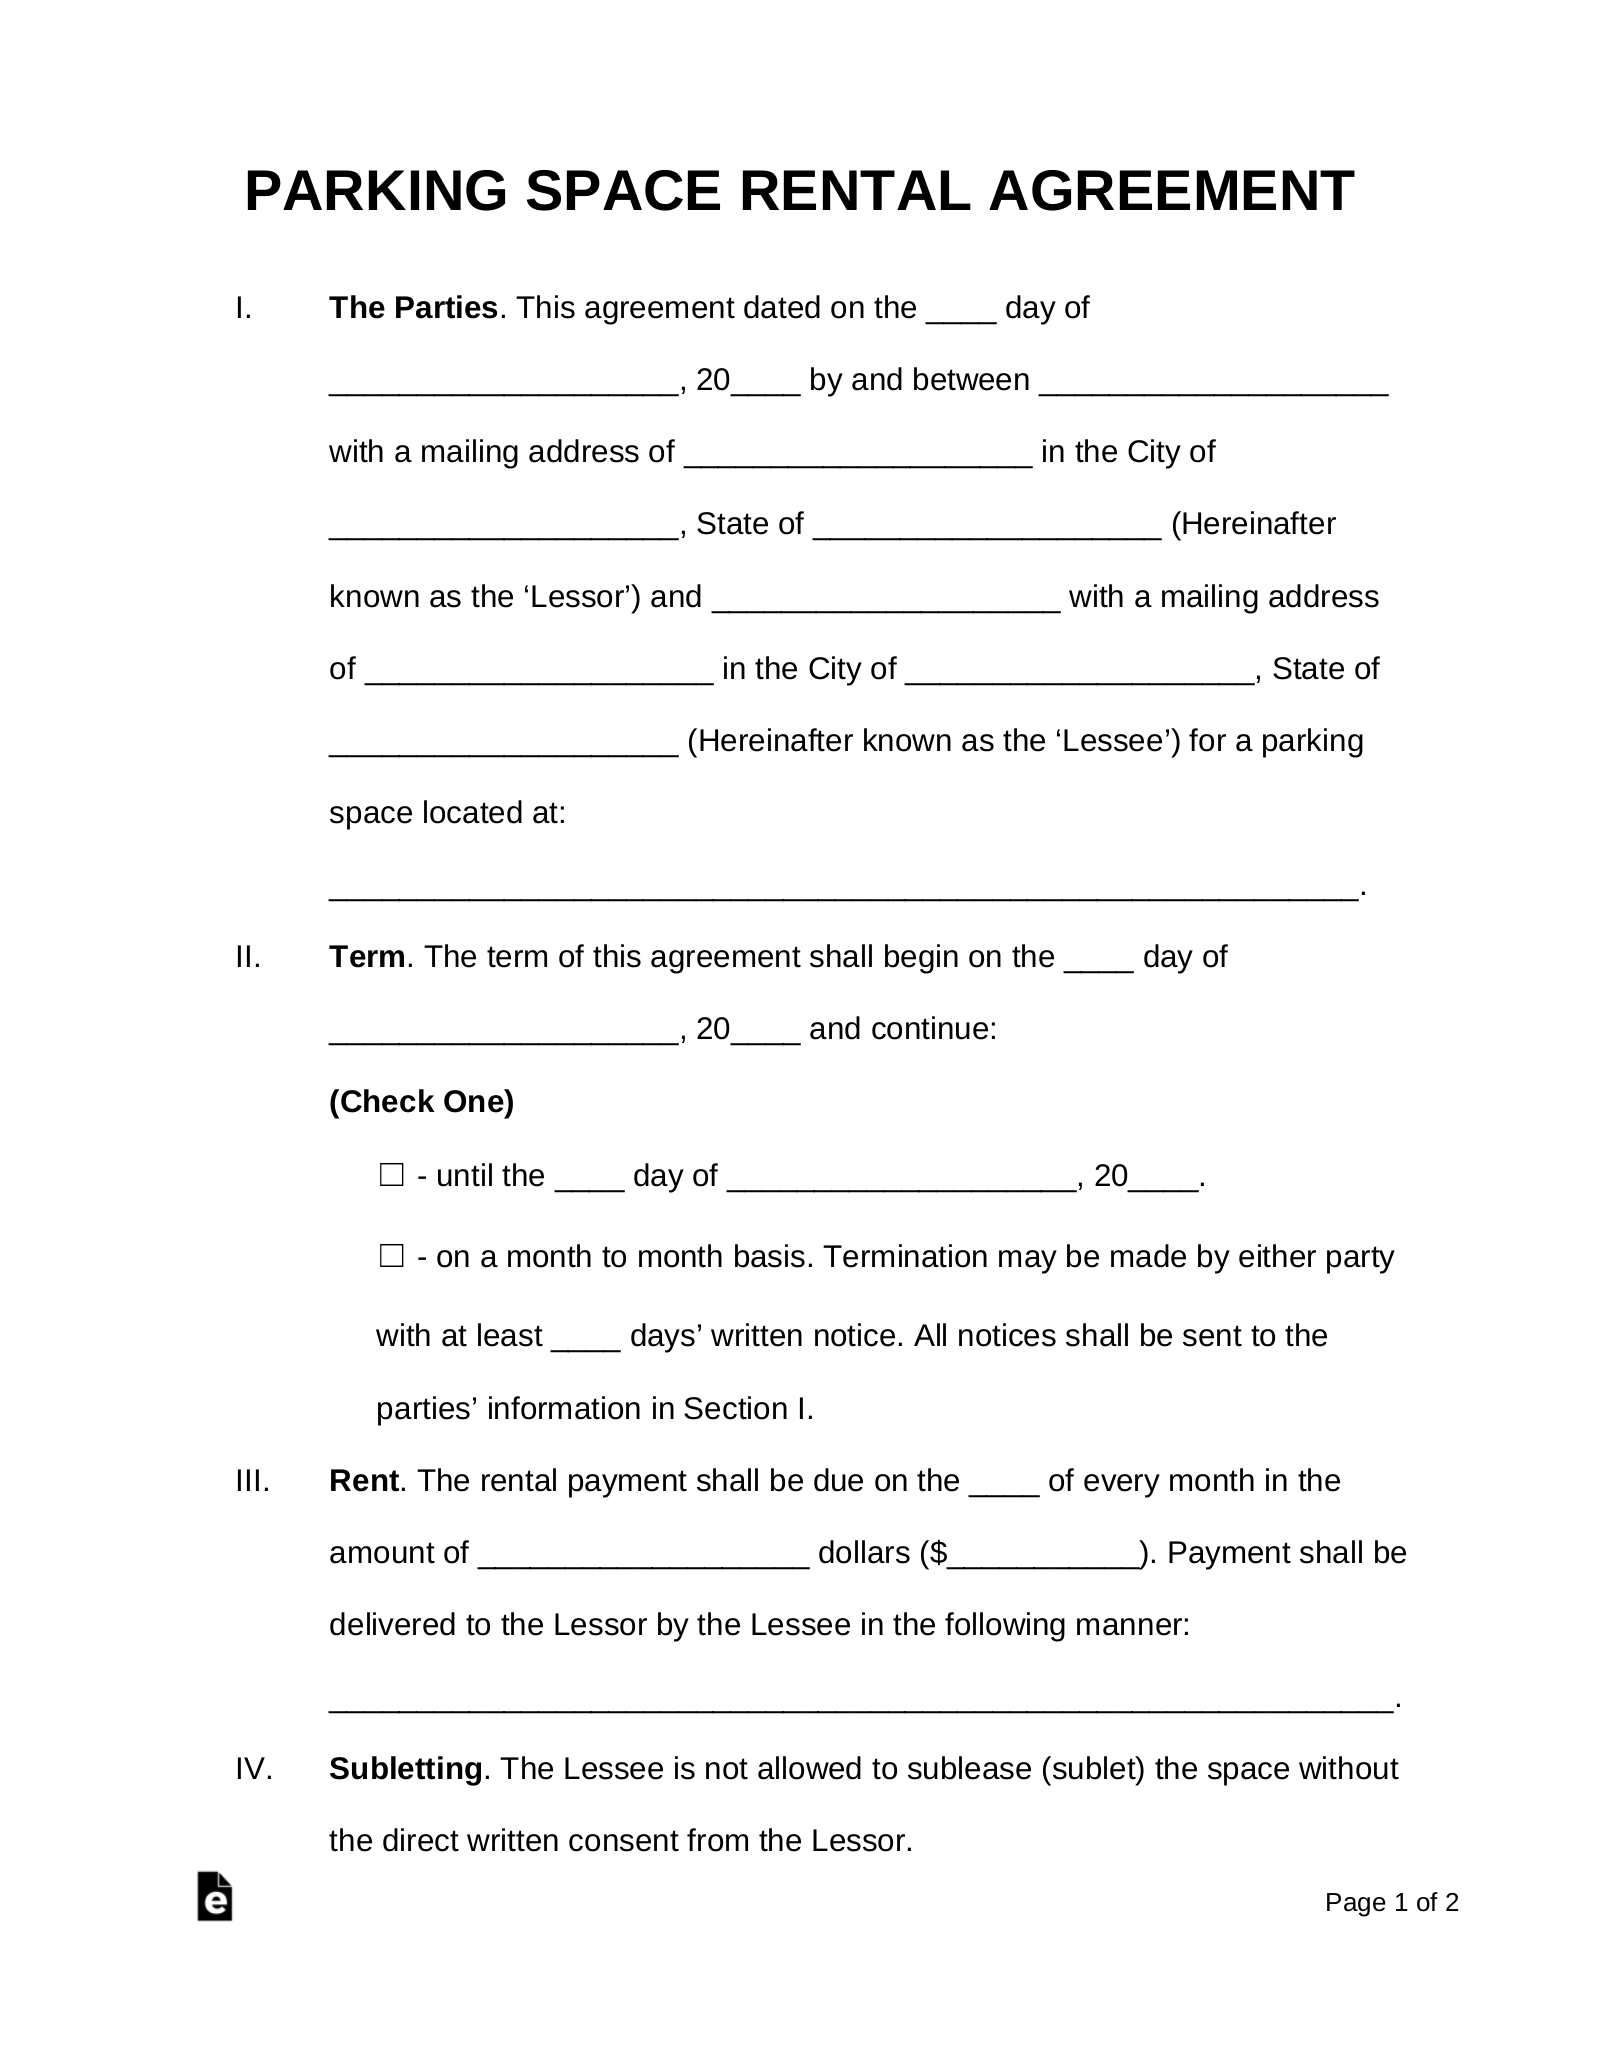 Free Parking Space Rental Lease Agreement Template Pdf